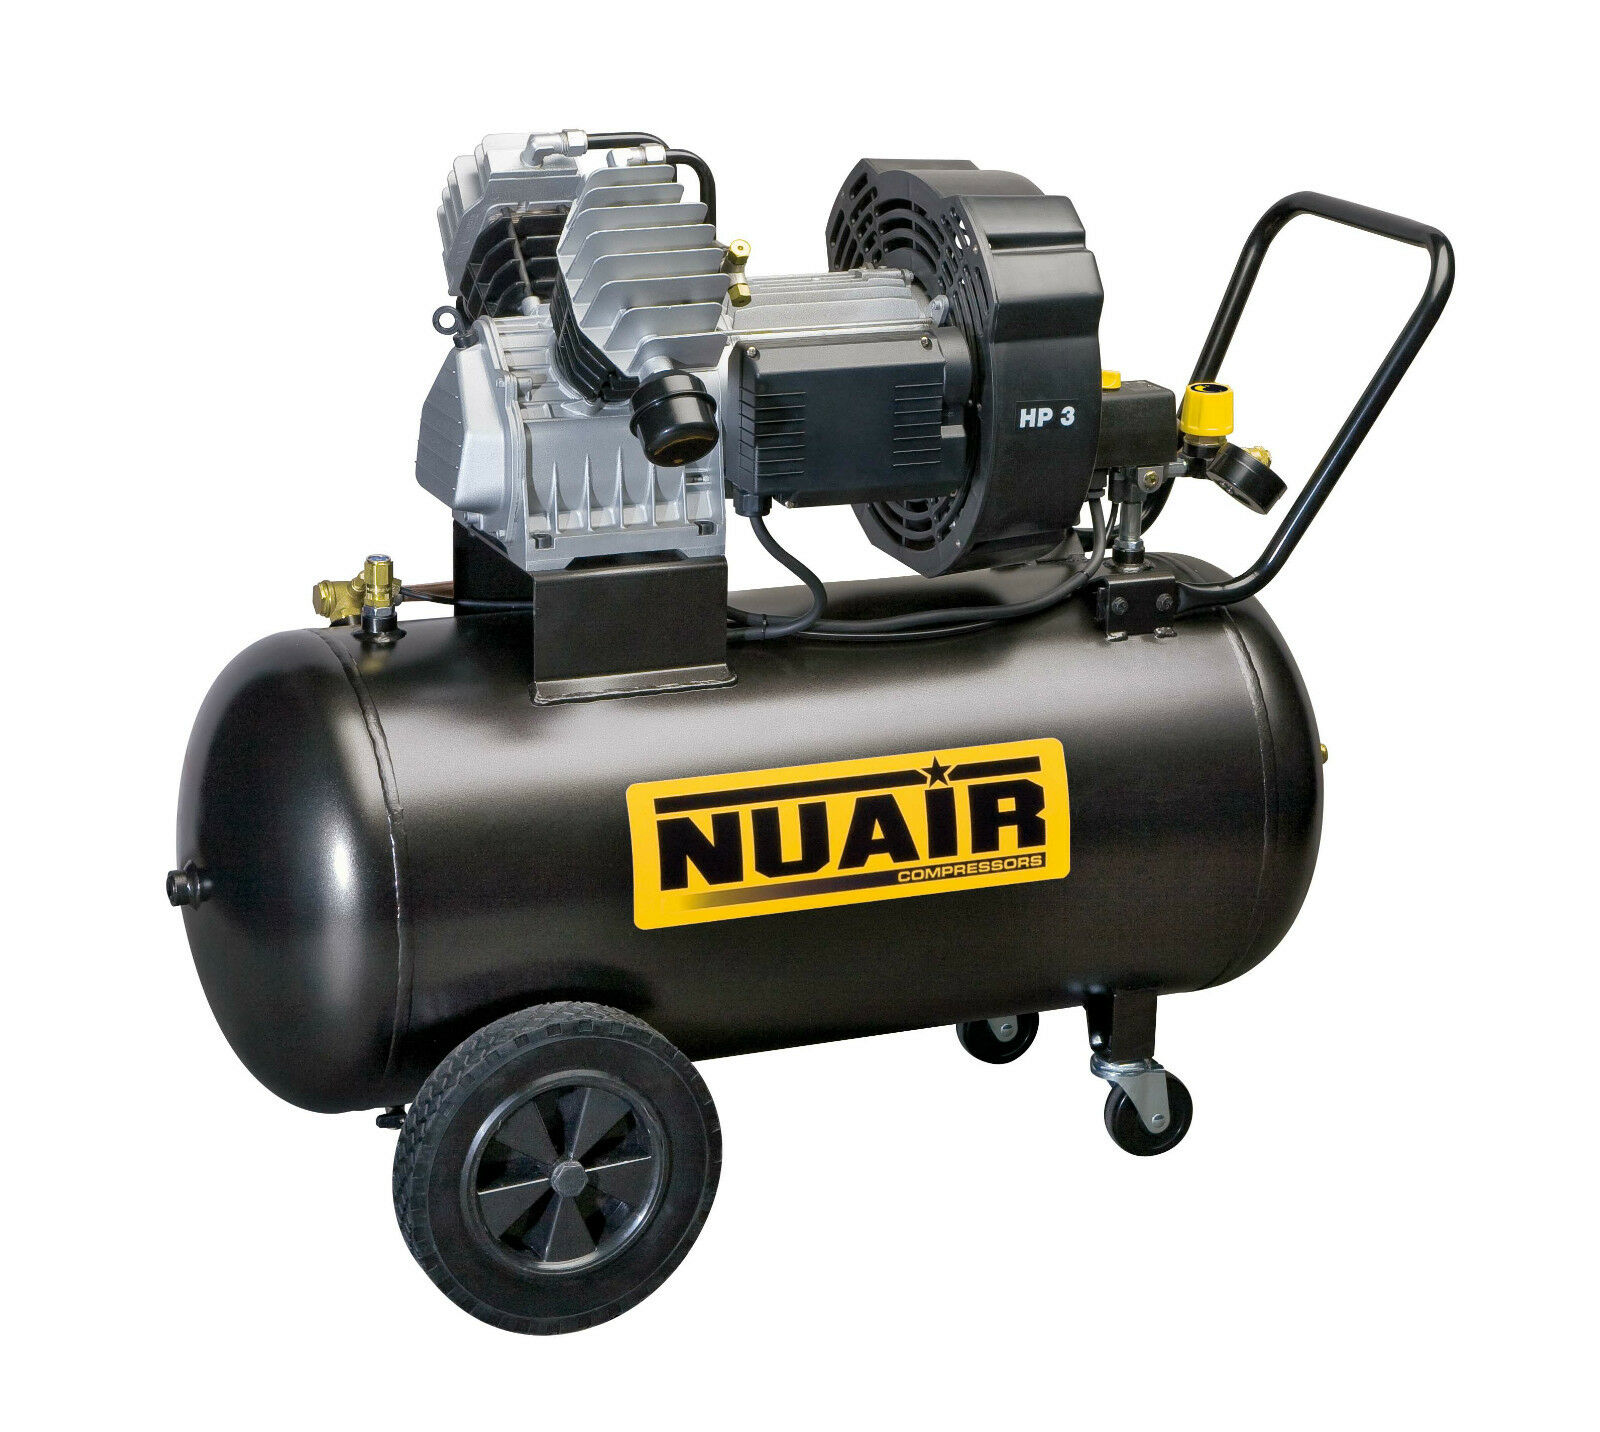 Compressore GVM 100 lt Litri 3 Hp Per edilizia Nuair - Made in italy